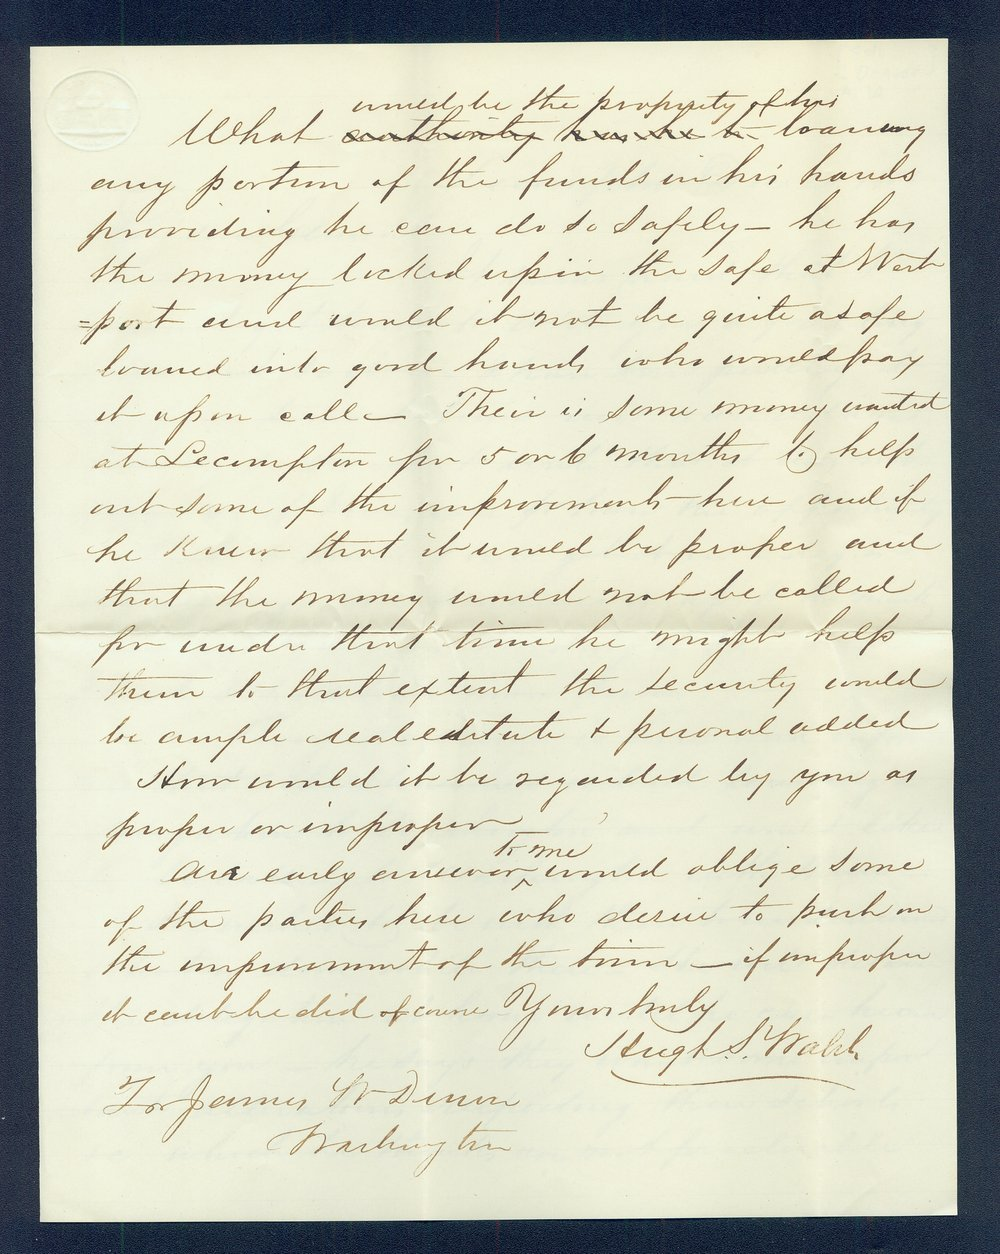 Hugh S. Walsh to General James William Denver - 2